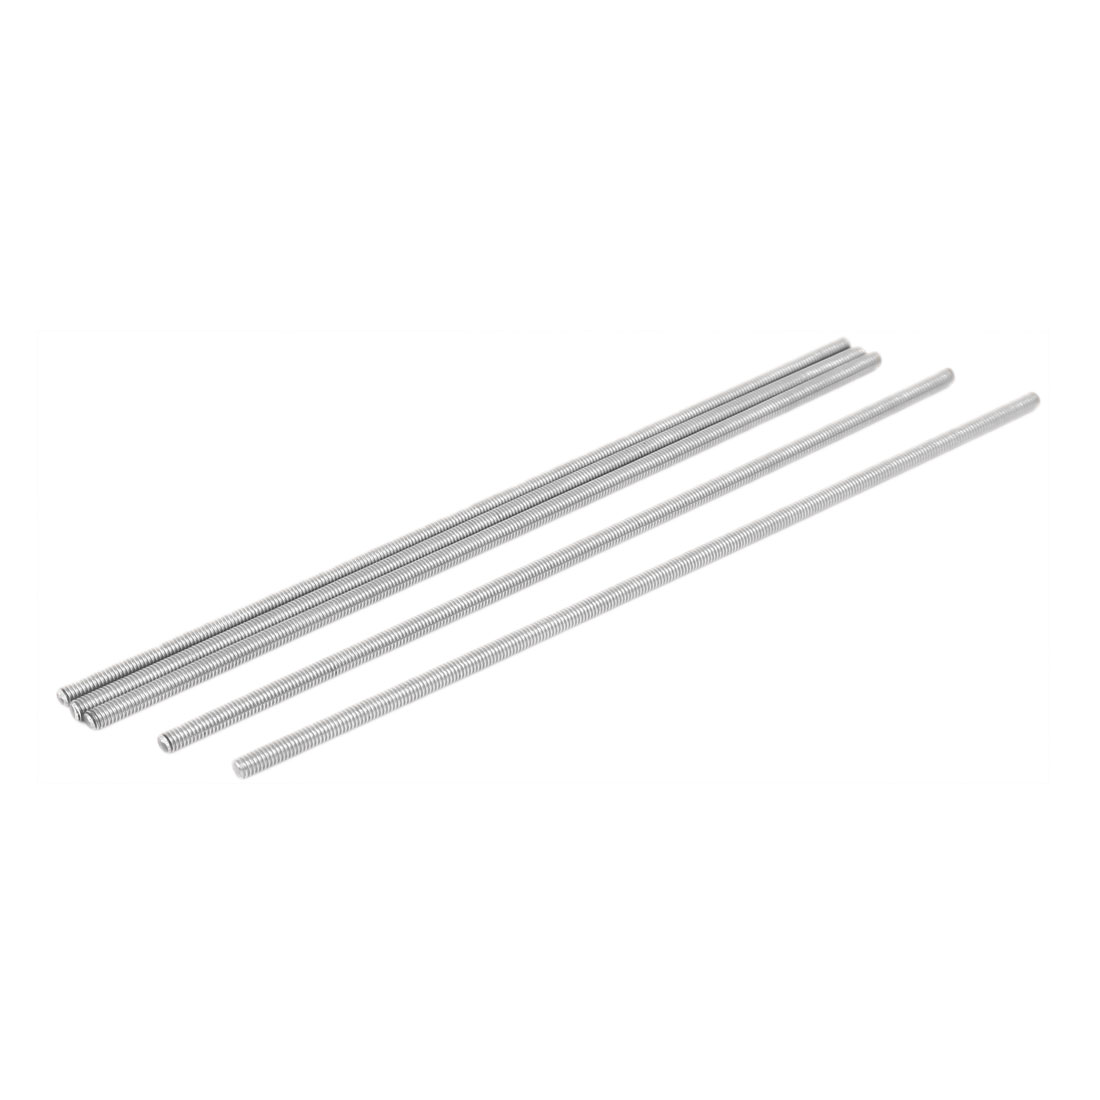 M4 x 180mm 0.7mm Pitch 304 Stainless Steel Fully Threaded Rods Silver Tone 5 Pcs